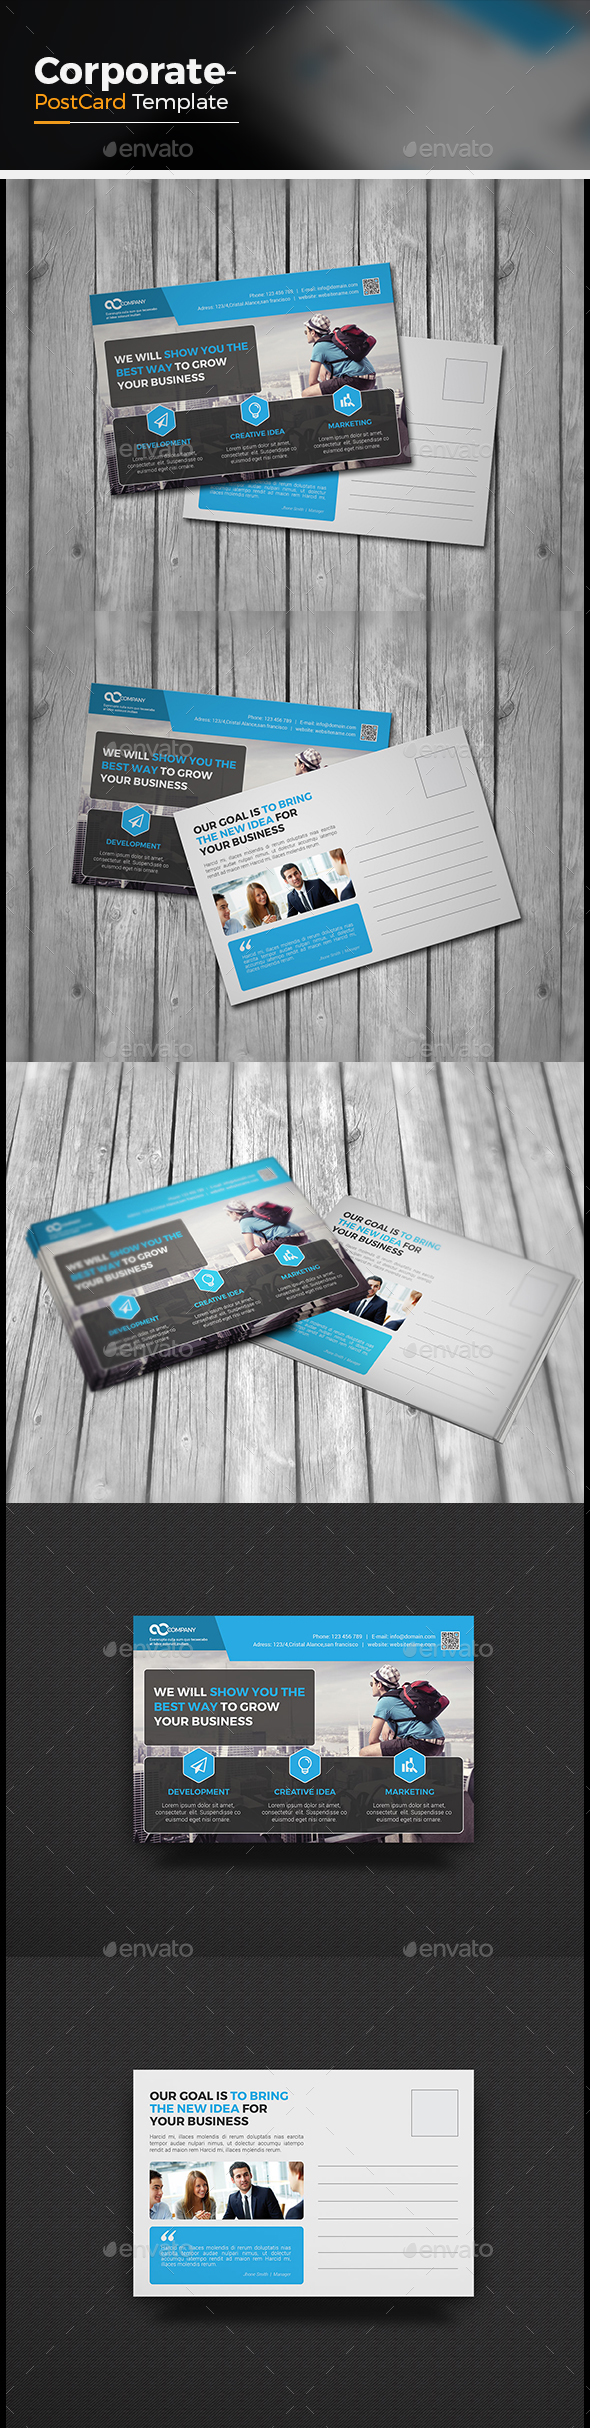 Postcard Template Graphics, Designs & Templates